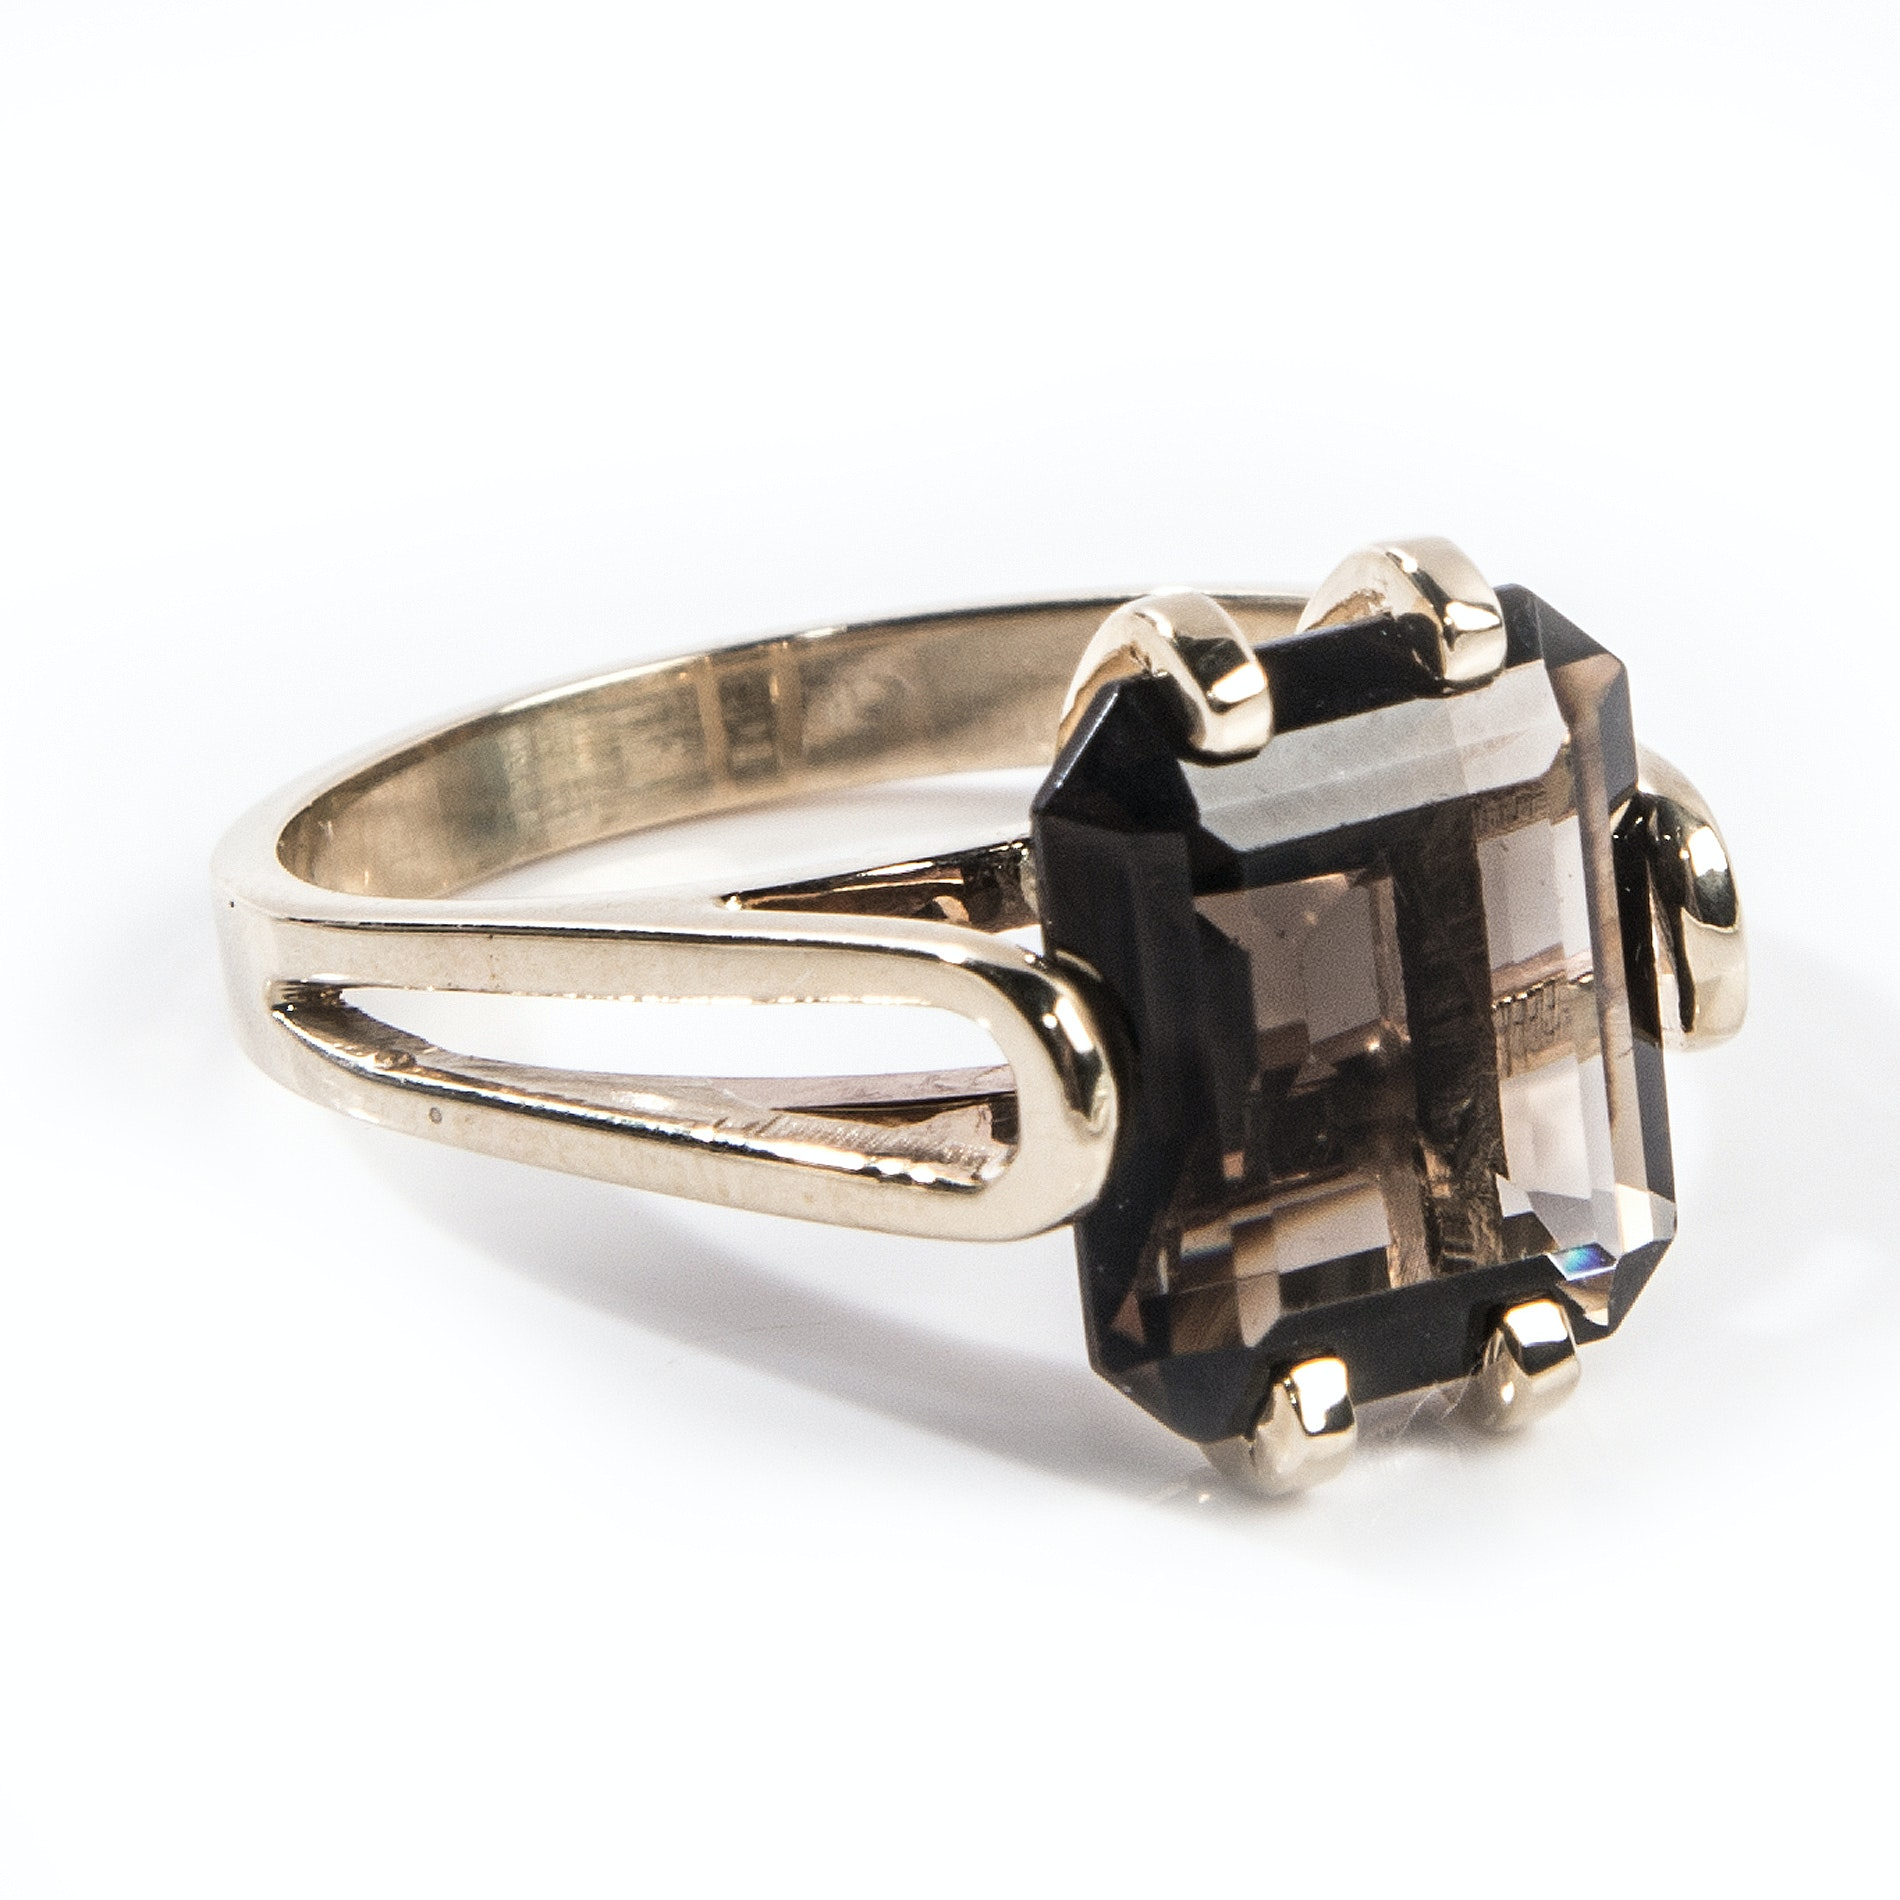 14K Yellow Gold 4.46 CTS Smoky Quartz Ring